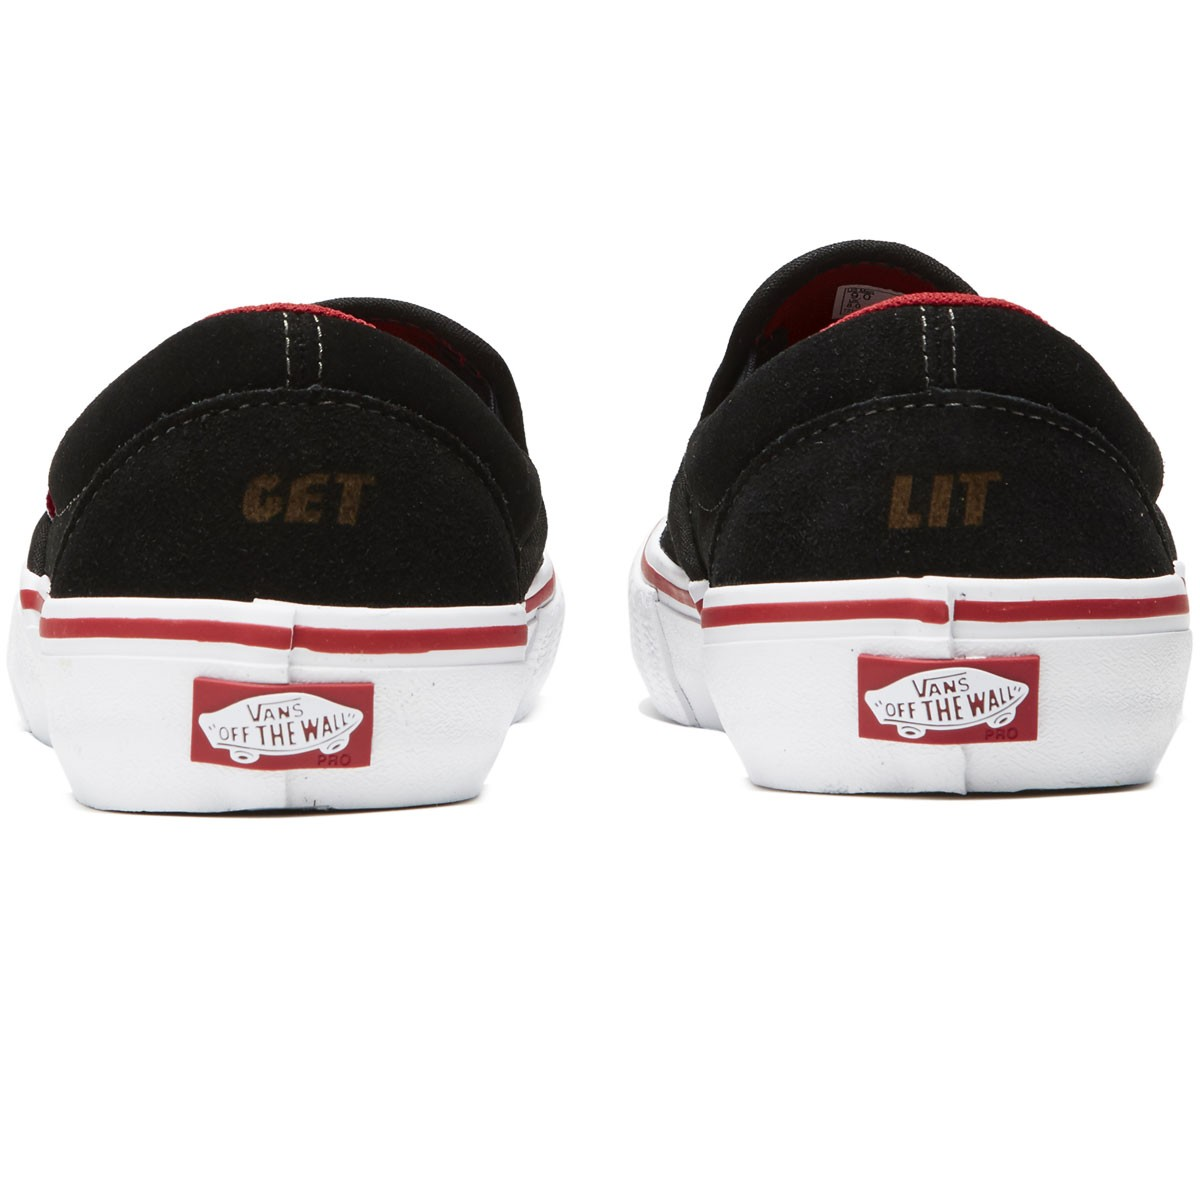 3c231ef2de Vans X Spitfire Slip On Pro Shoes